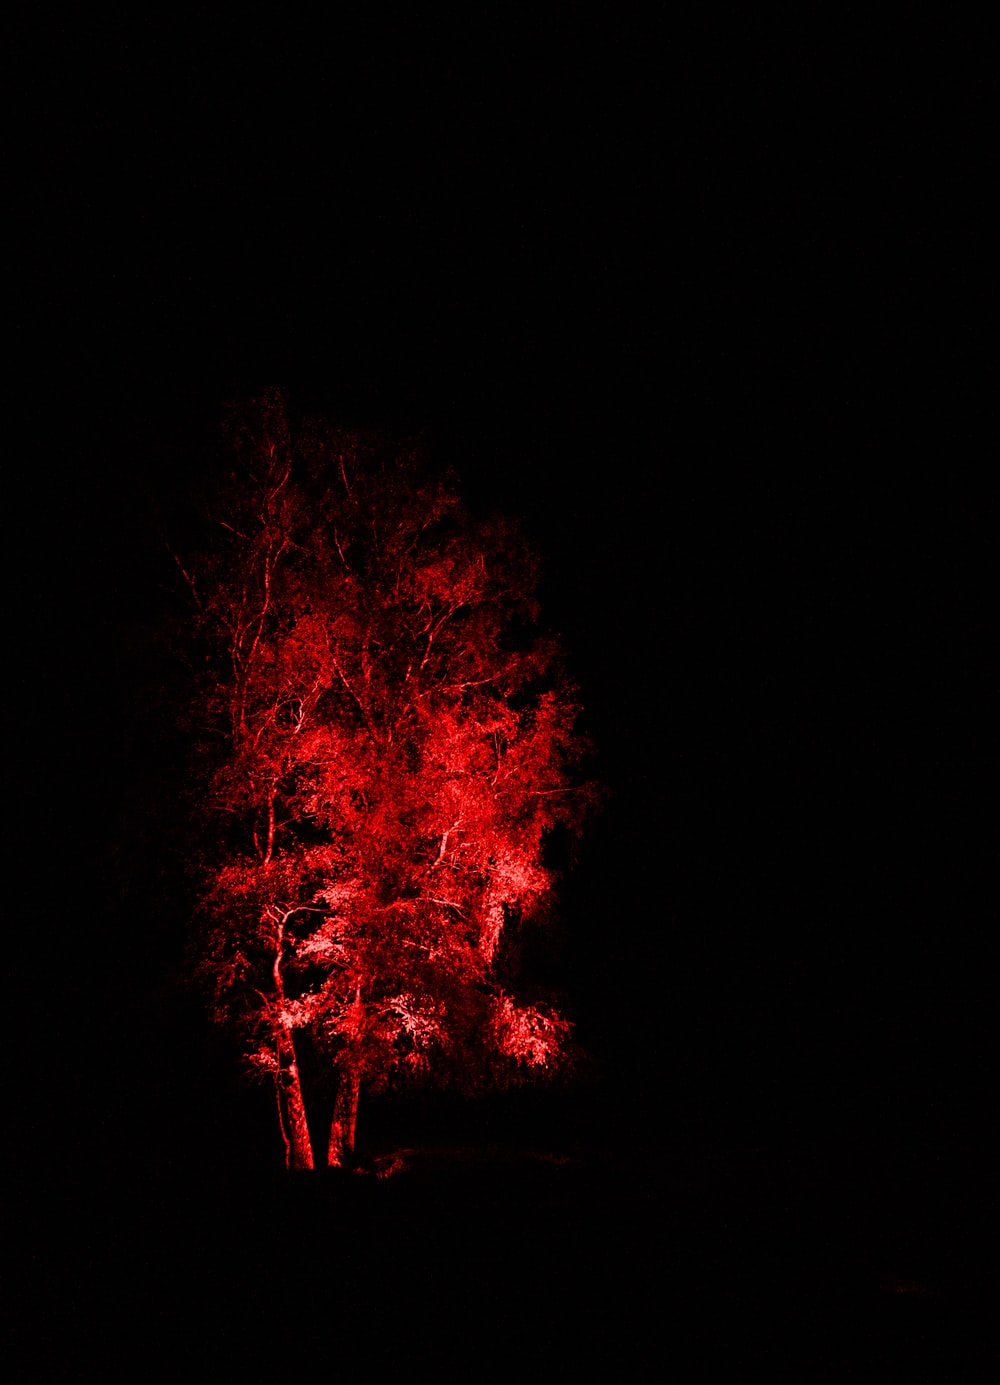 red and black fire during night time